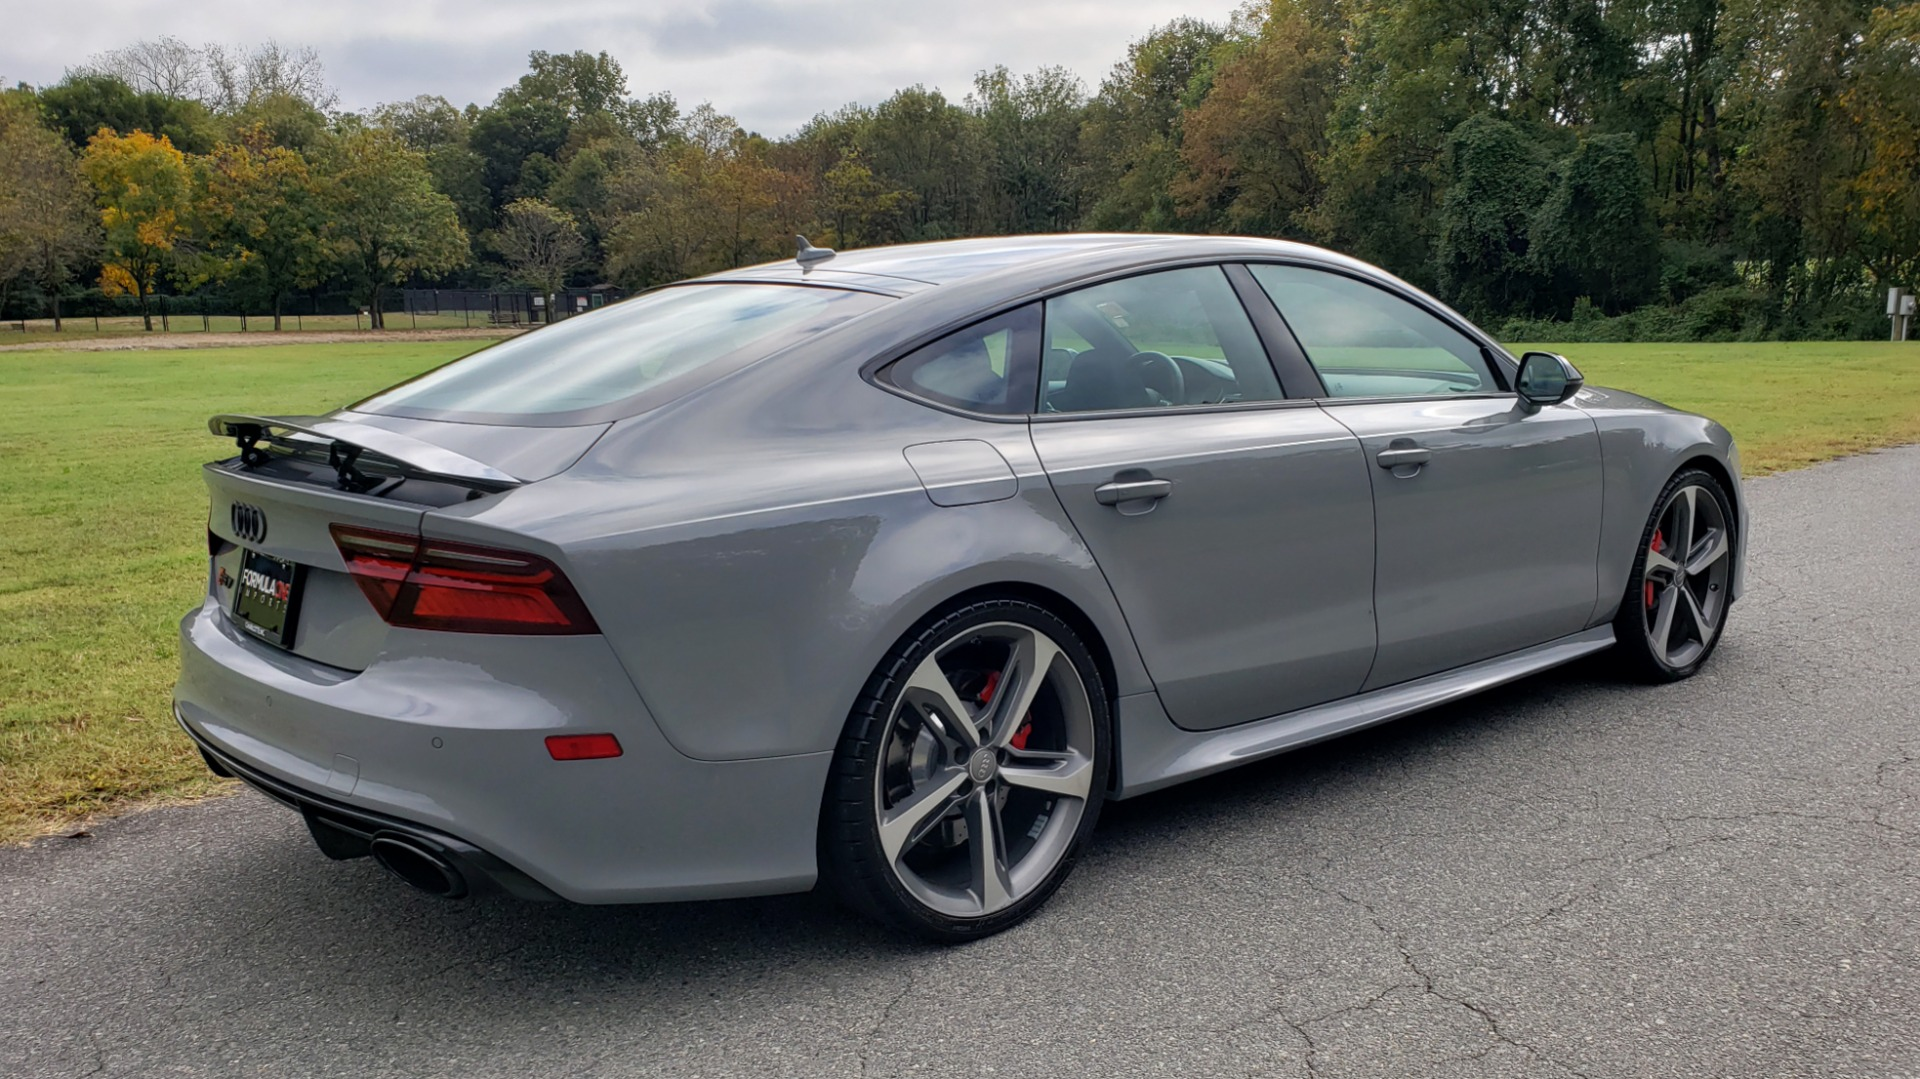 Used 2018 Audi RS 7 4.0T TIPTRONIC / CARBON OPTIC / DRVR ASST / NAV / REARVIEW / 750HP+ for sale Sold at Formula Imports in Charlotte NC 28227 19